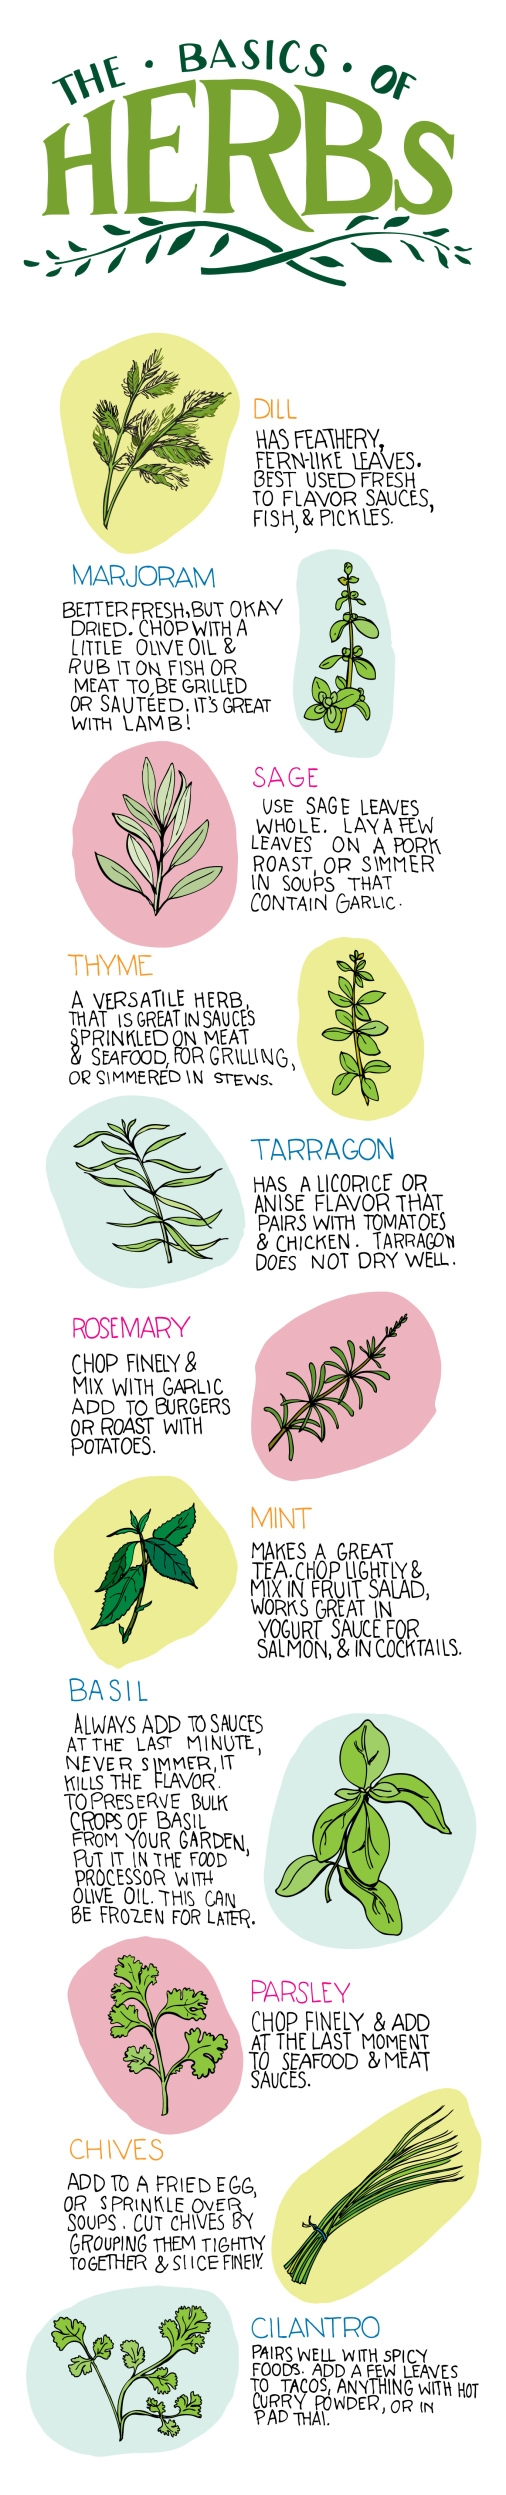 The Basics of Herbs For Beginners Infographic